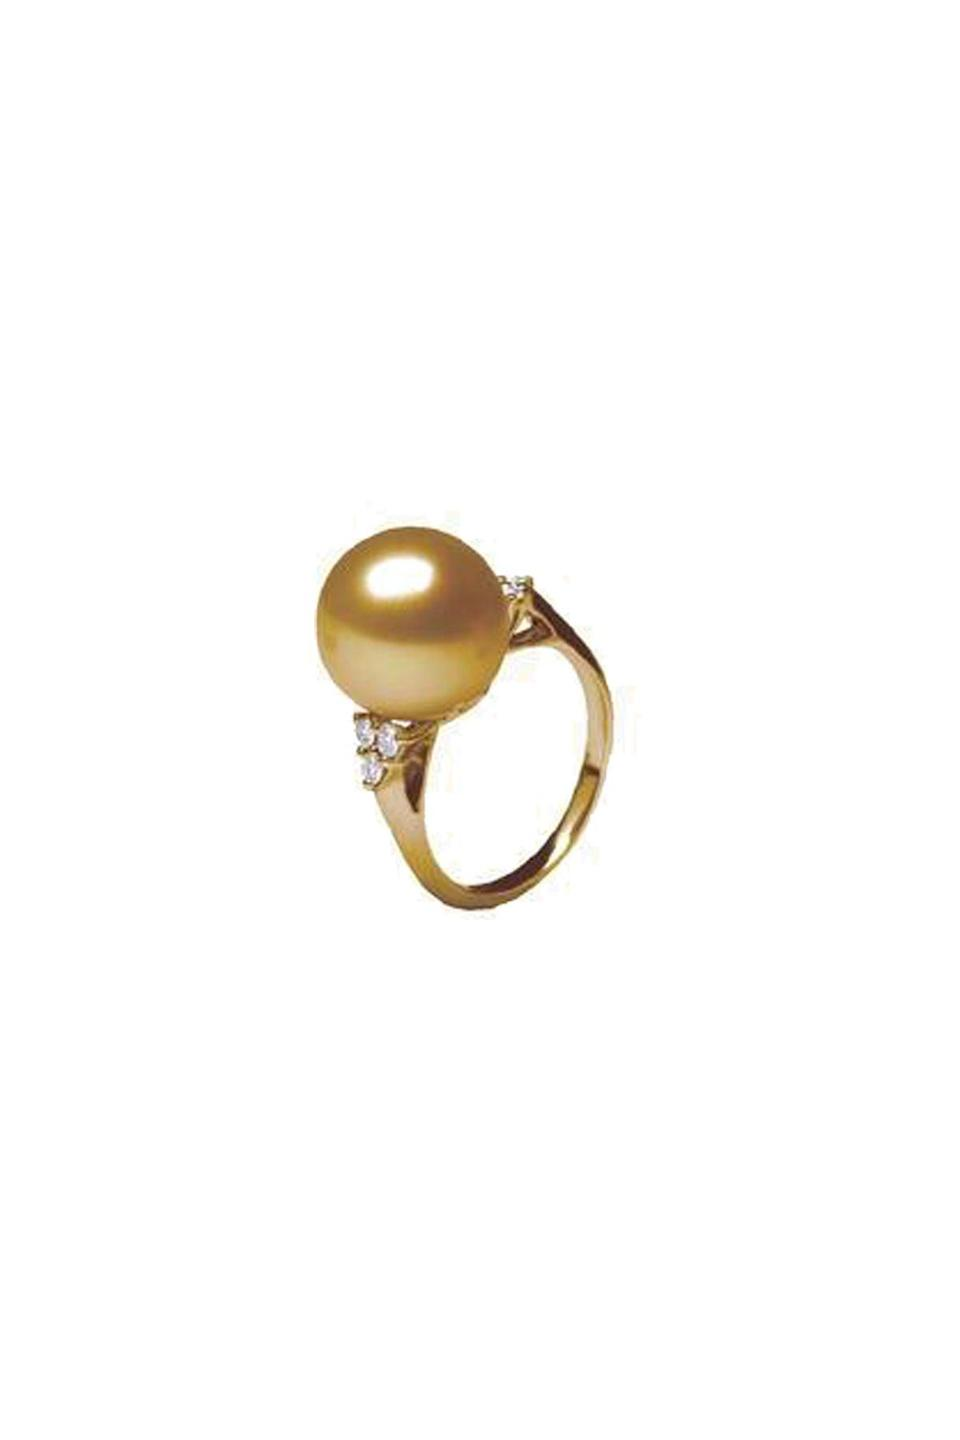 """<p><strong>Jewelmer</strong></p><p>jewelmer.com</p><p><strong>$4250.00</strong></p><p><a href=""""https://us.jewelmer.com/collections/rings/products/classiques-ring-a"""" rel=""""nofollow noopener"""" target=""""_blank"""" data-ylk=""""slk:Shop Now"""" class=""""link rapid-noclick-resp"""">Shop Now</a></p><p>Pearl engagement rings are having a moment, and this champagne colored pearl is utterly spectacular in a diamond and 18-karat gold setting. <br><strong><br>More:</strong> <a href=""""https://www.townandcountrymag.com/style/jewelry-and-watches/a35045500/pearl-engagement-rings-history/"""" rel=""""nofollow noopener"""" target=""""_blank"""" data-ylk=""""slk:A Brief History of the Pearl Engagement Ring"""" class=""""link rapid-noclick-resp"""">A Brief History of the Pearl Engagement Ring</a></p>"""